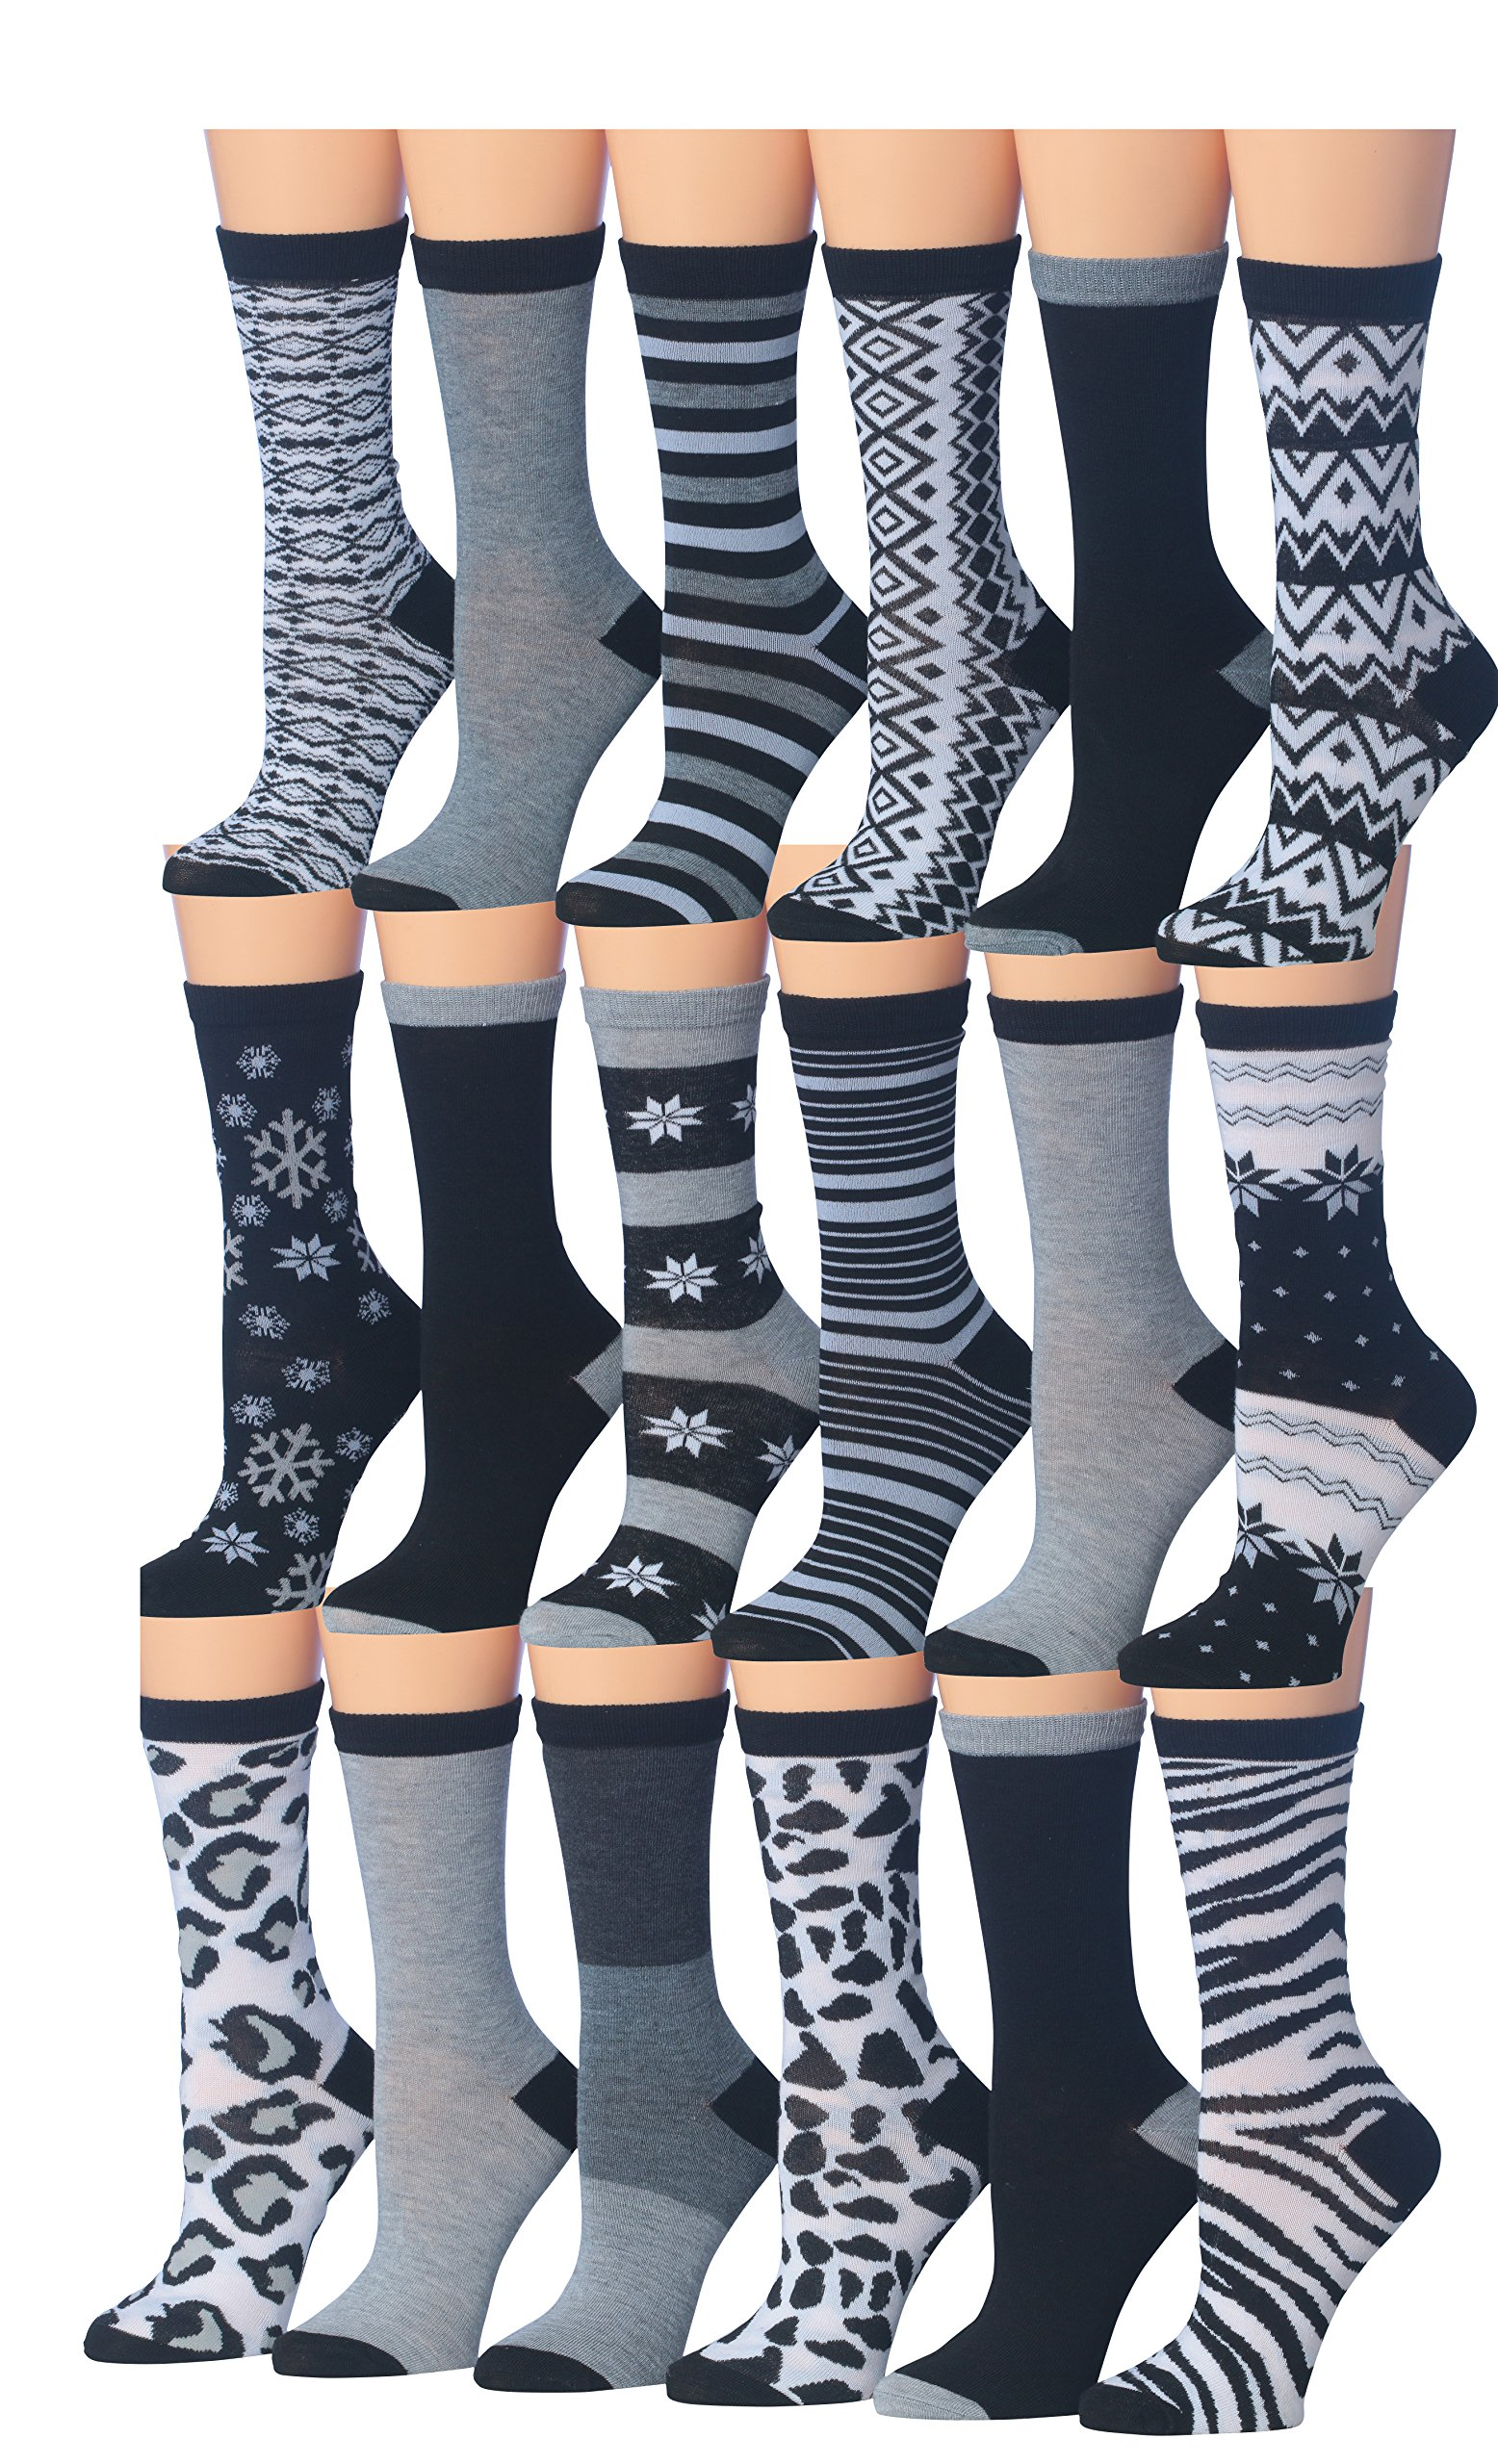 Tipi Toe Women's 18-Pairs Value Pack Monochrome Patterned Black & White Winter Crew Dress Socks, (sock size 9-11) Fits shoe size 5-9, WC62